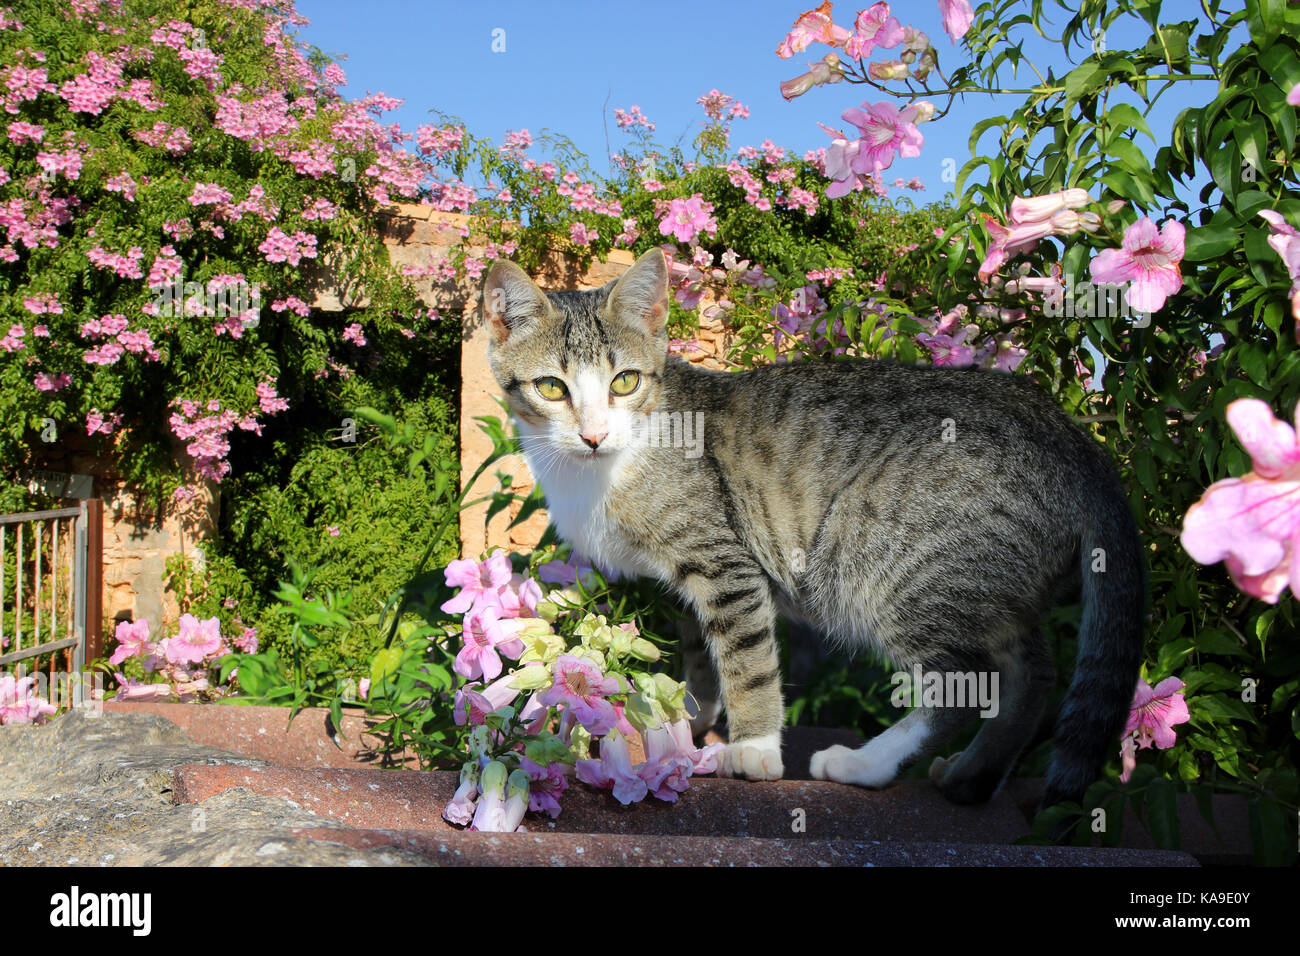 domestic cat, black tabby white, standing oon a wall between pink flowers Stock Photo